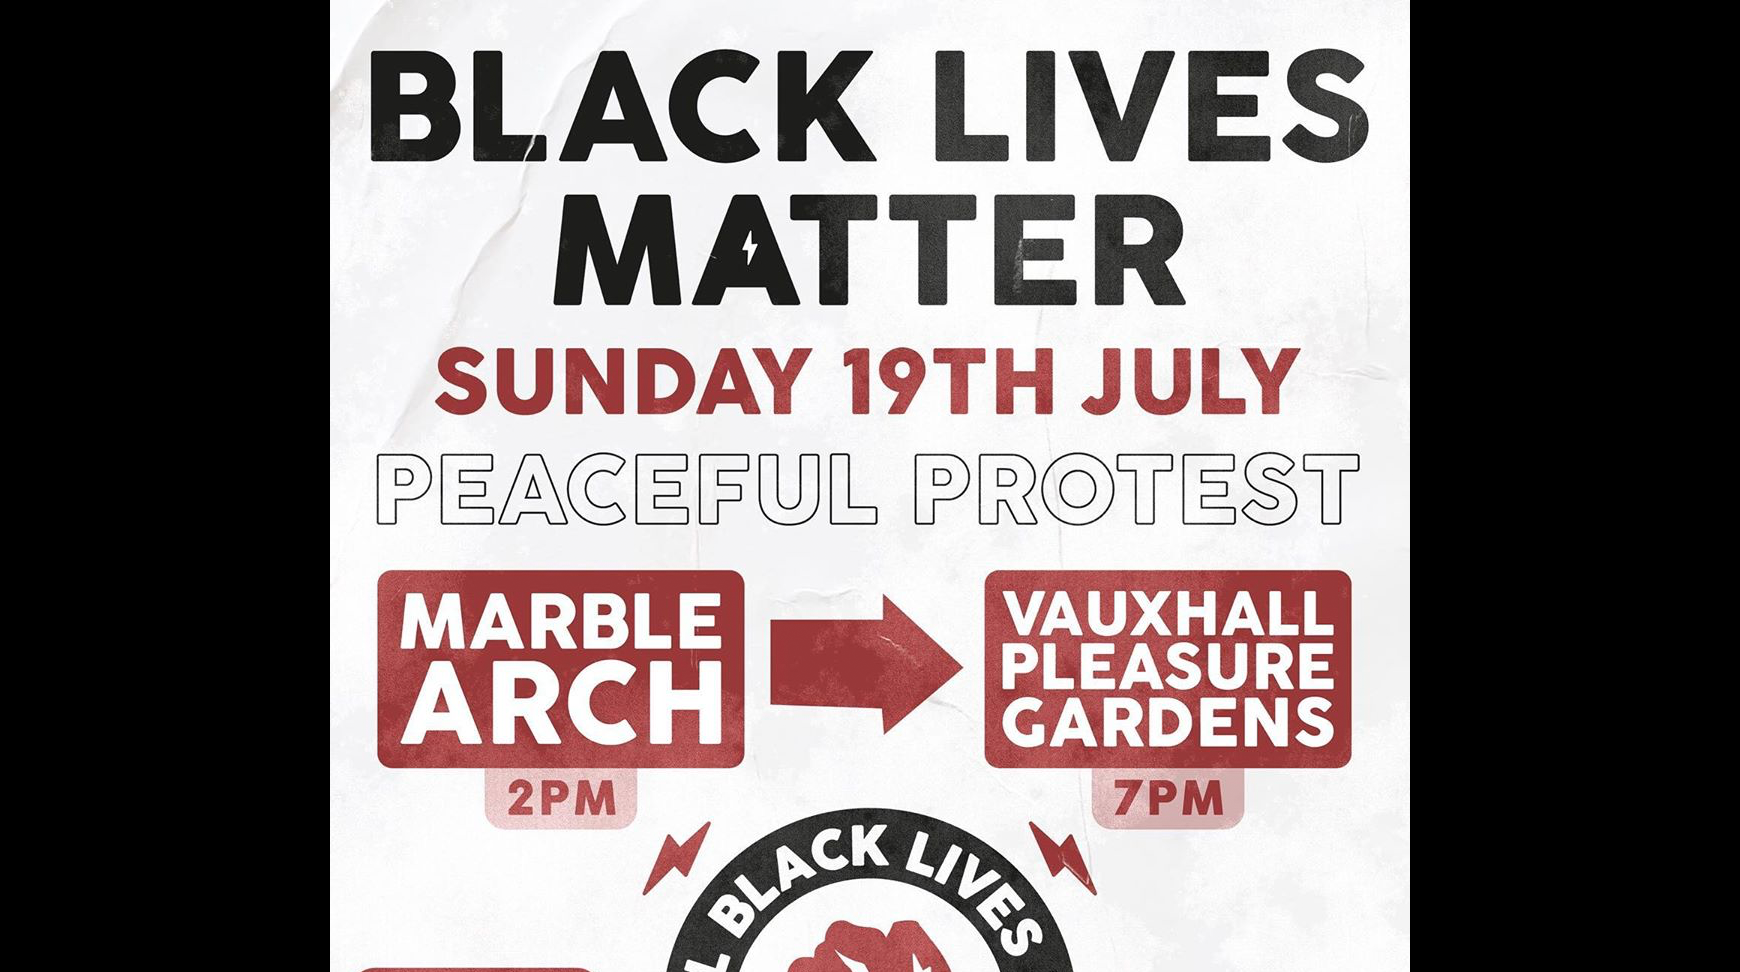 All Black Lives UK London BLM protest – Sunday 19 July 2pm Marble Arch